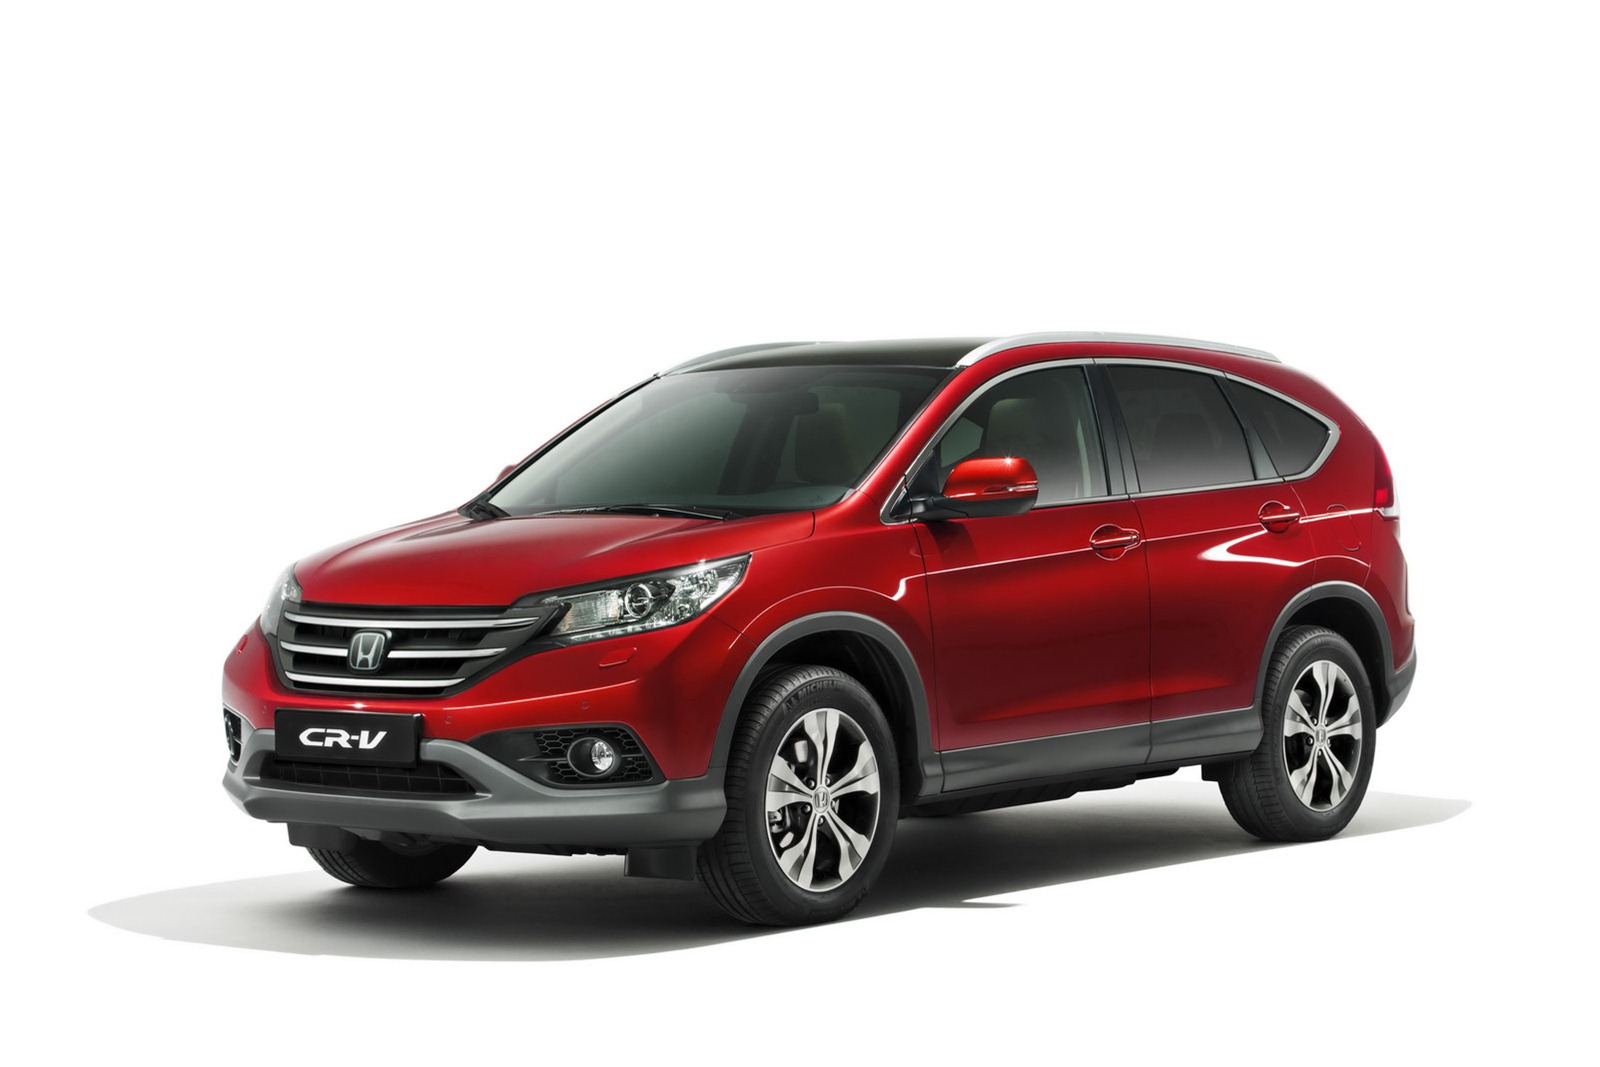 2013 honda cr v vehicle with upgraded tune up features. Black Bedroom Furniture Sets. Home Design Ideas